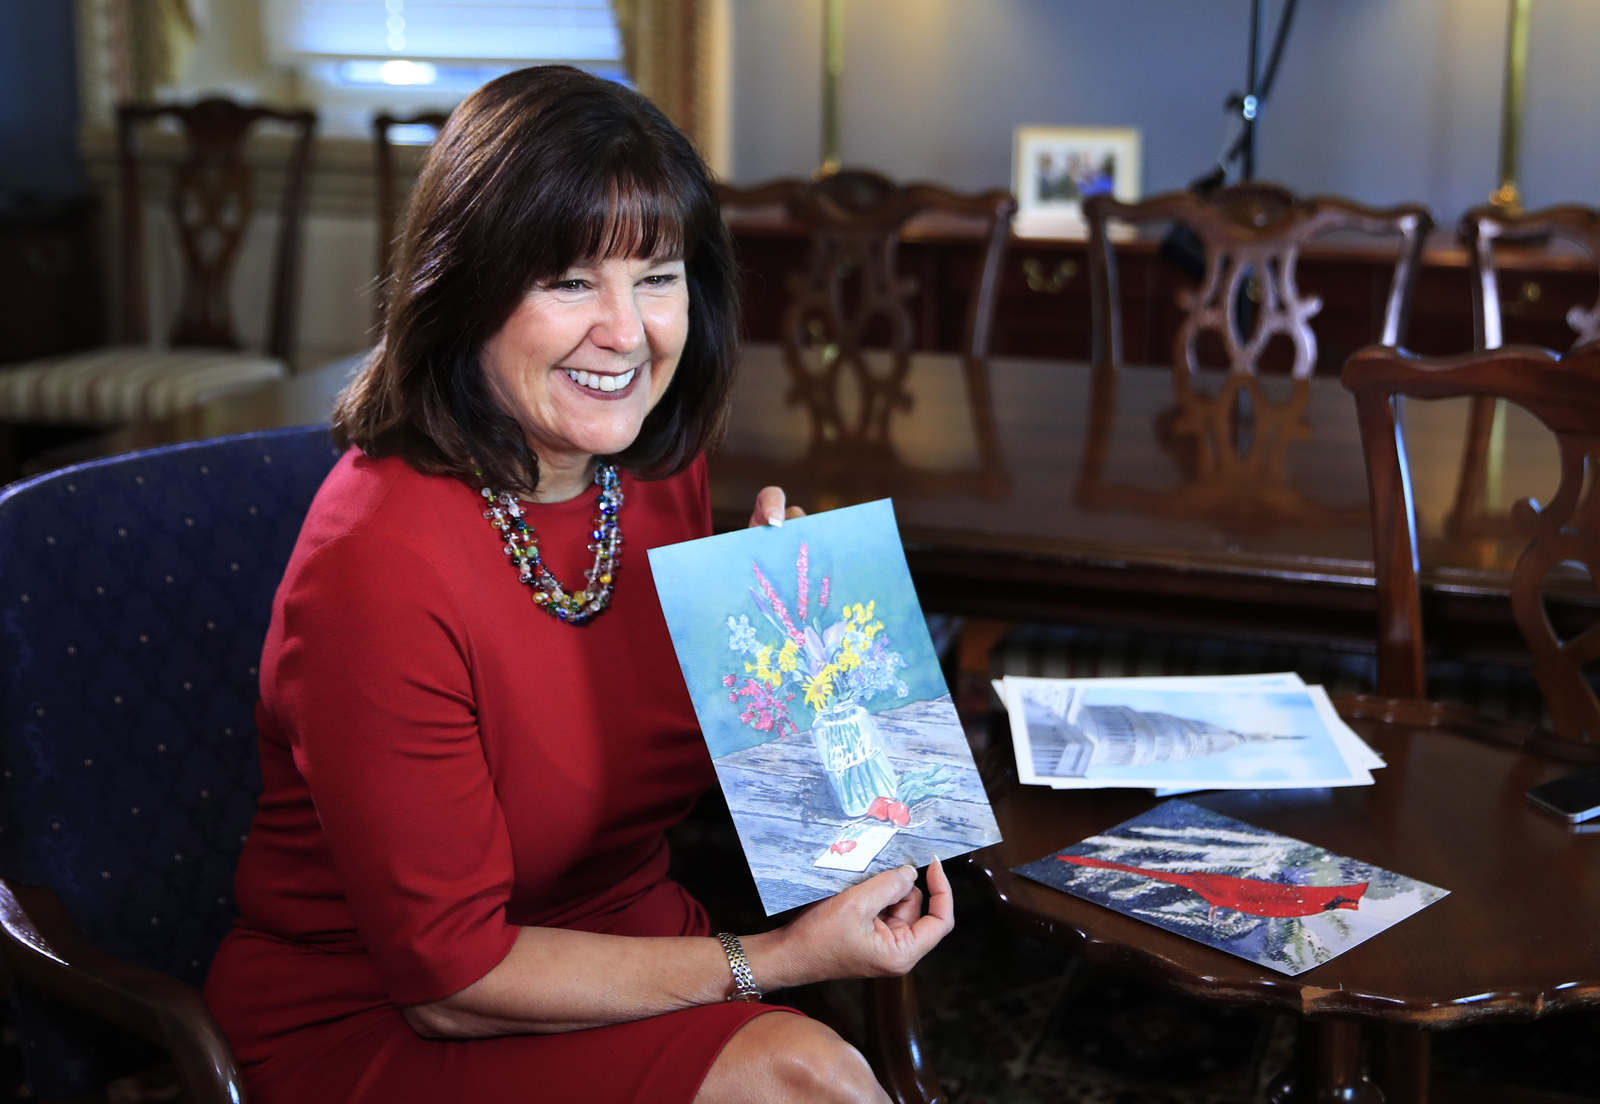 Karen Pence Is Teaching At A Christian School That Bans LGBT Students And Employees